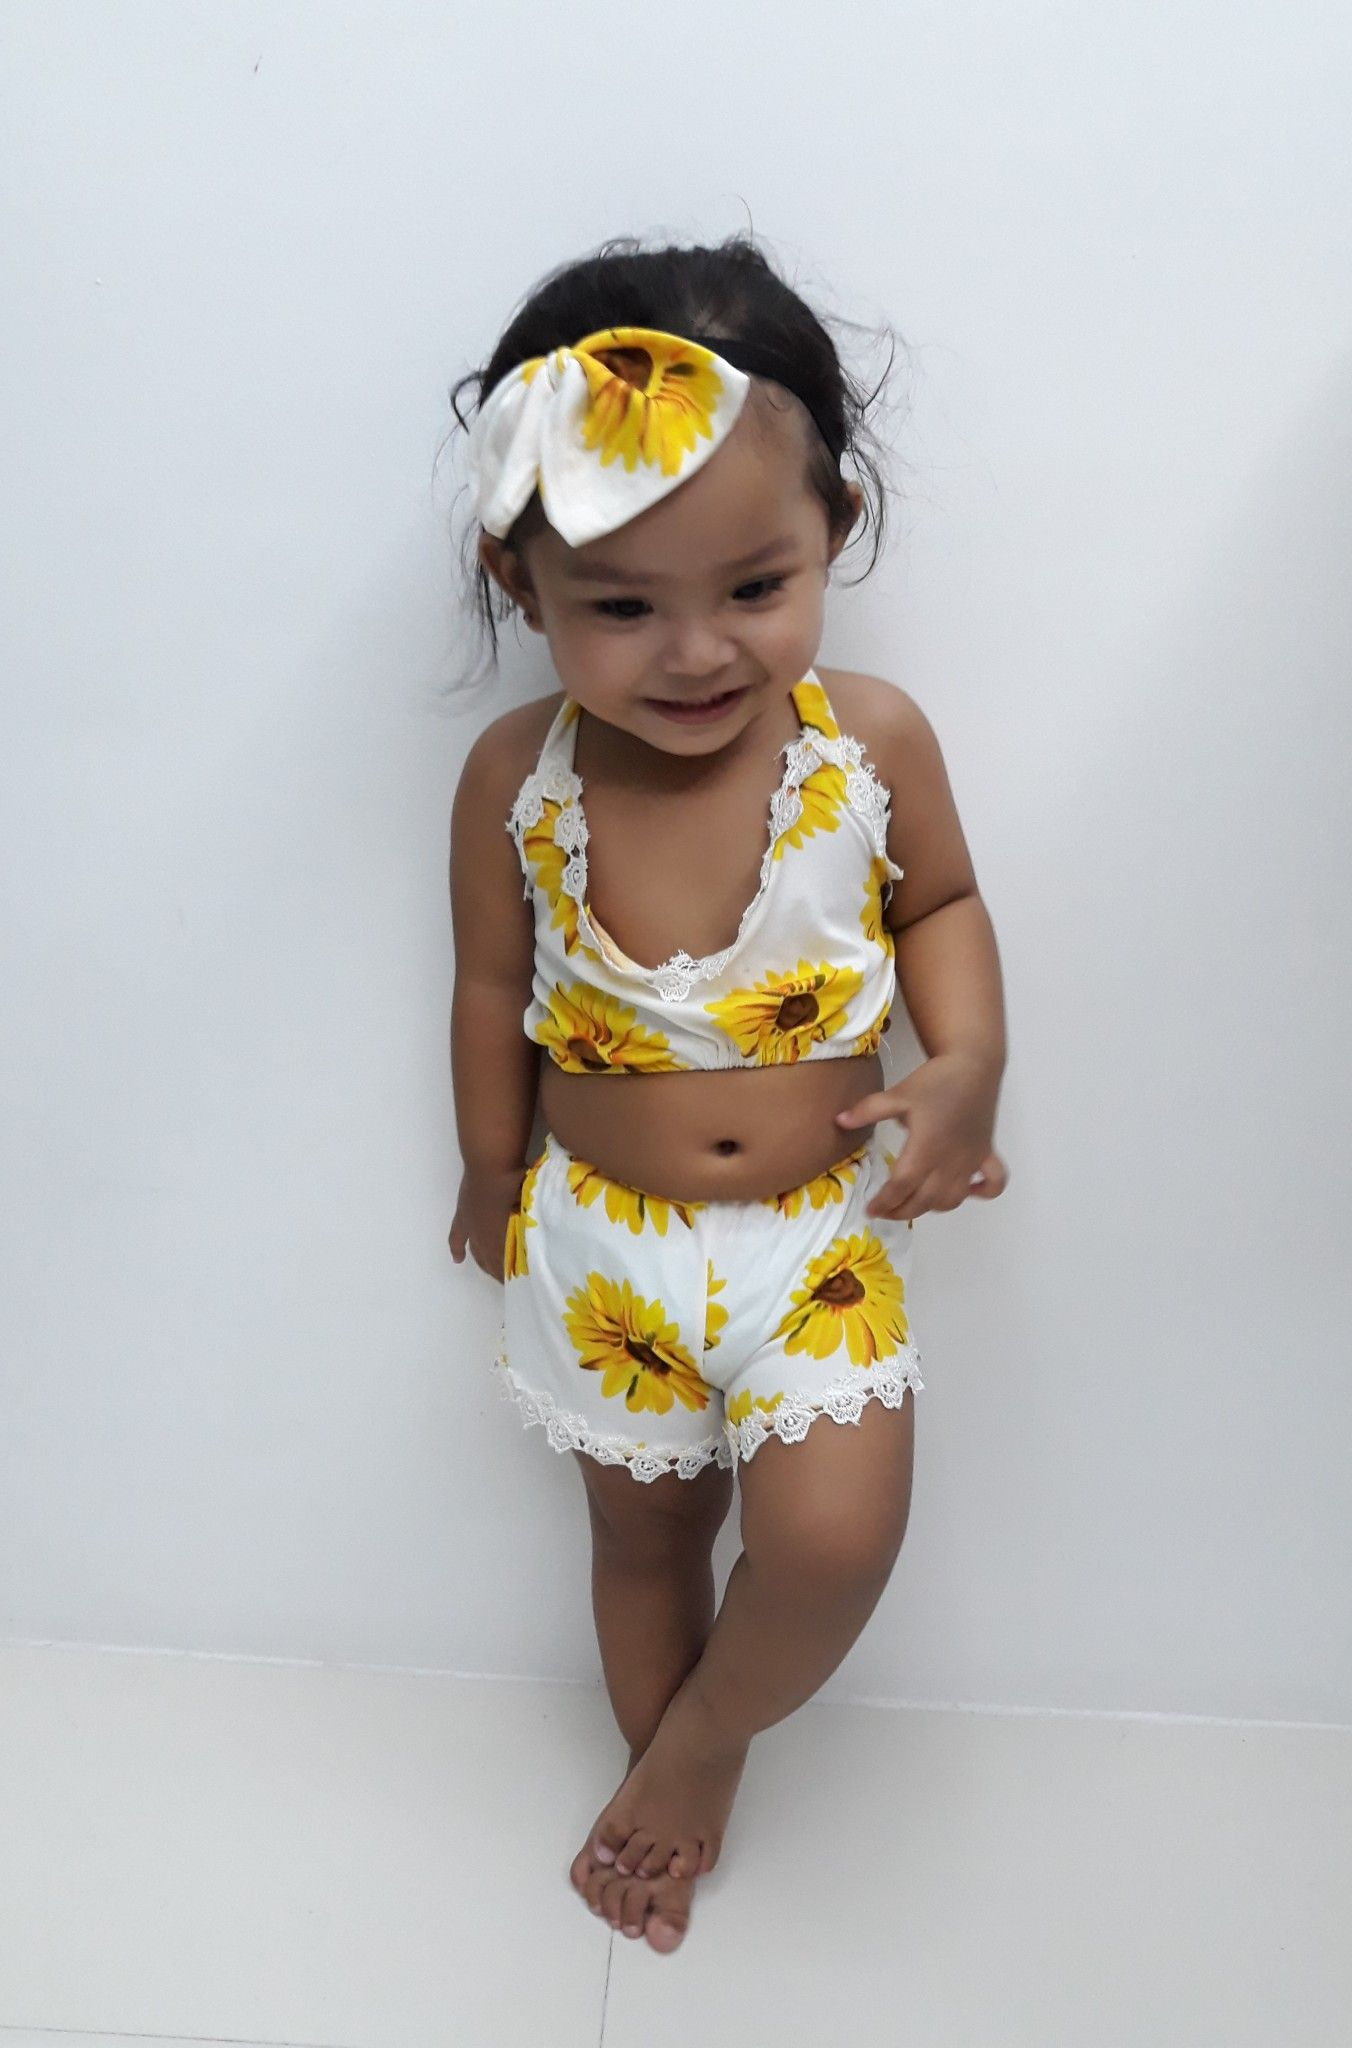 d72b1f521 My 2 yo baby wearing this cute sunflower outfit I bought (at a very ...